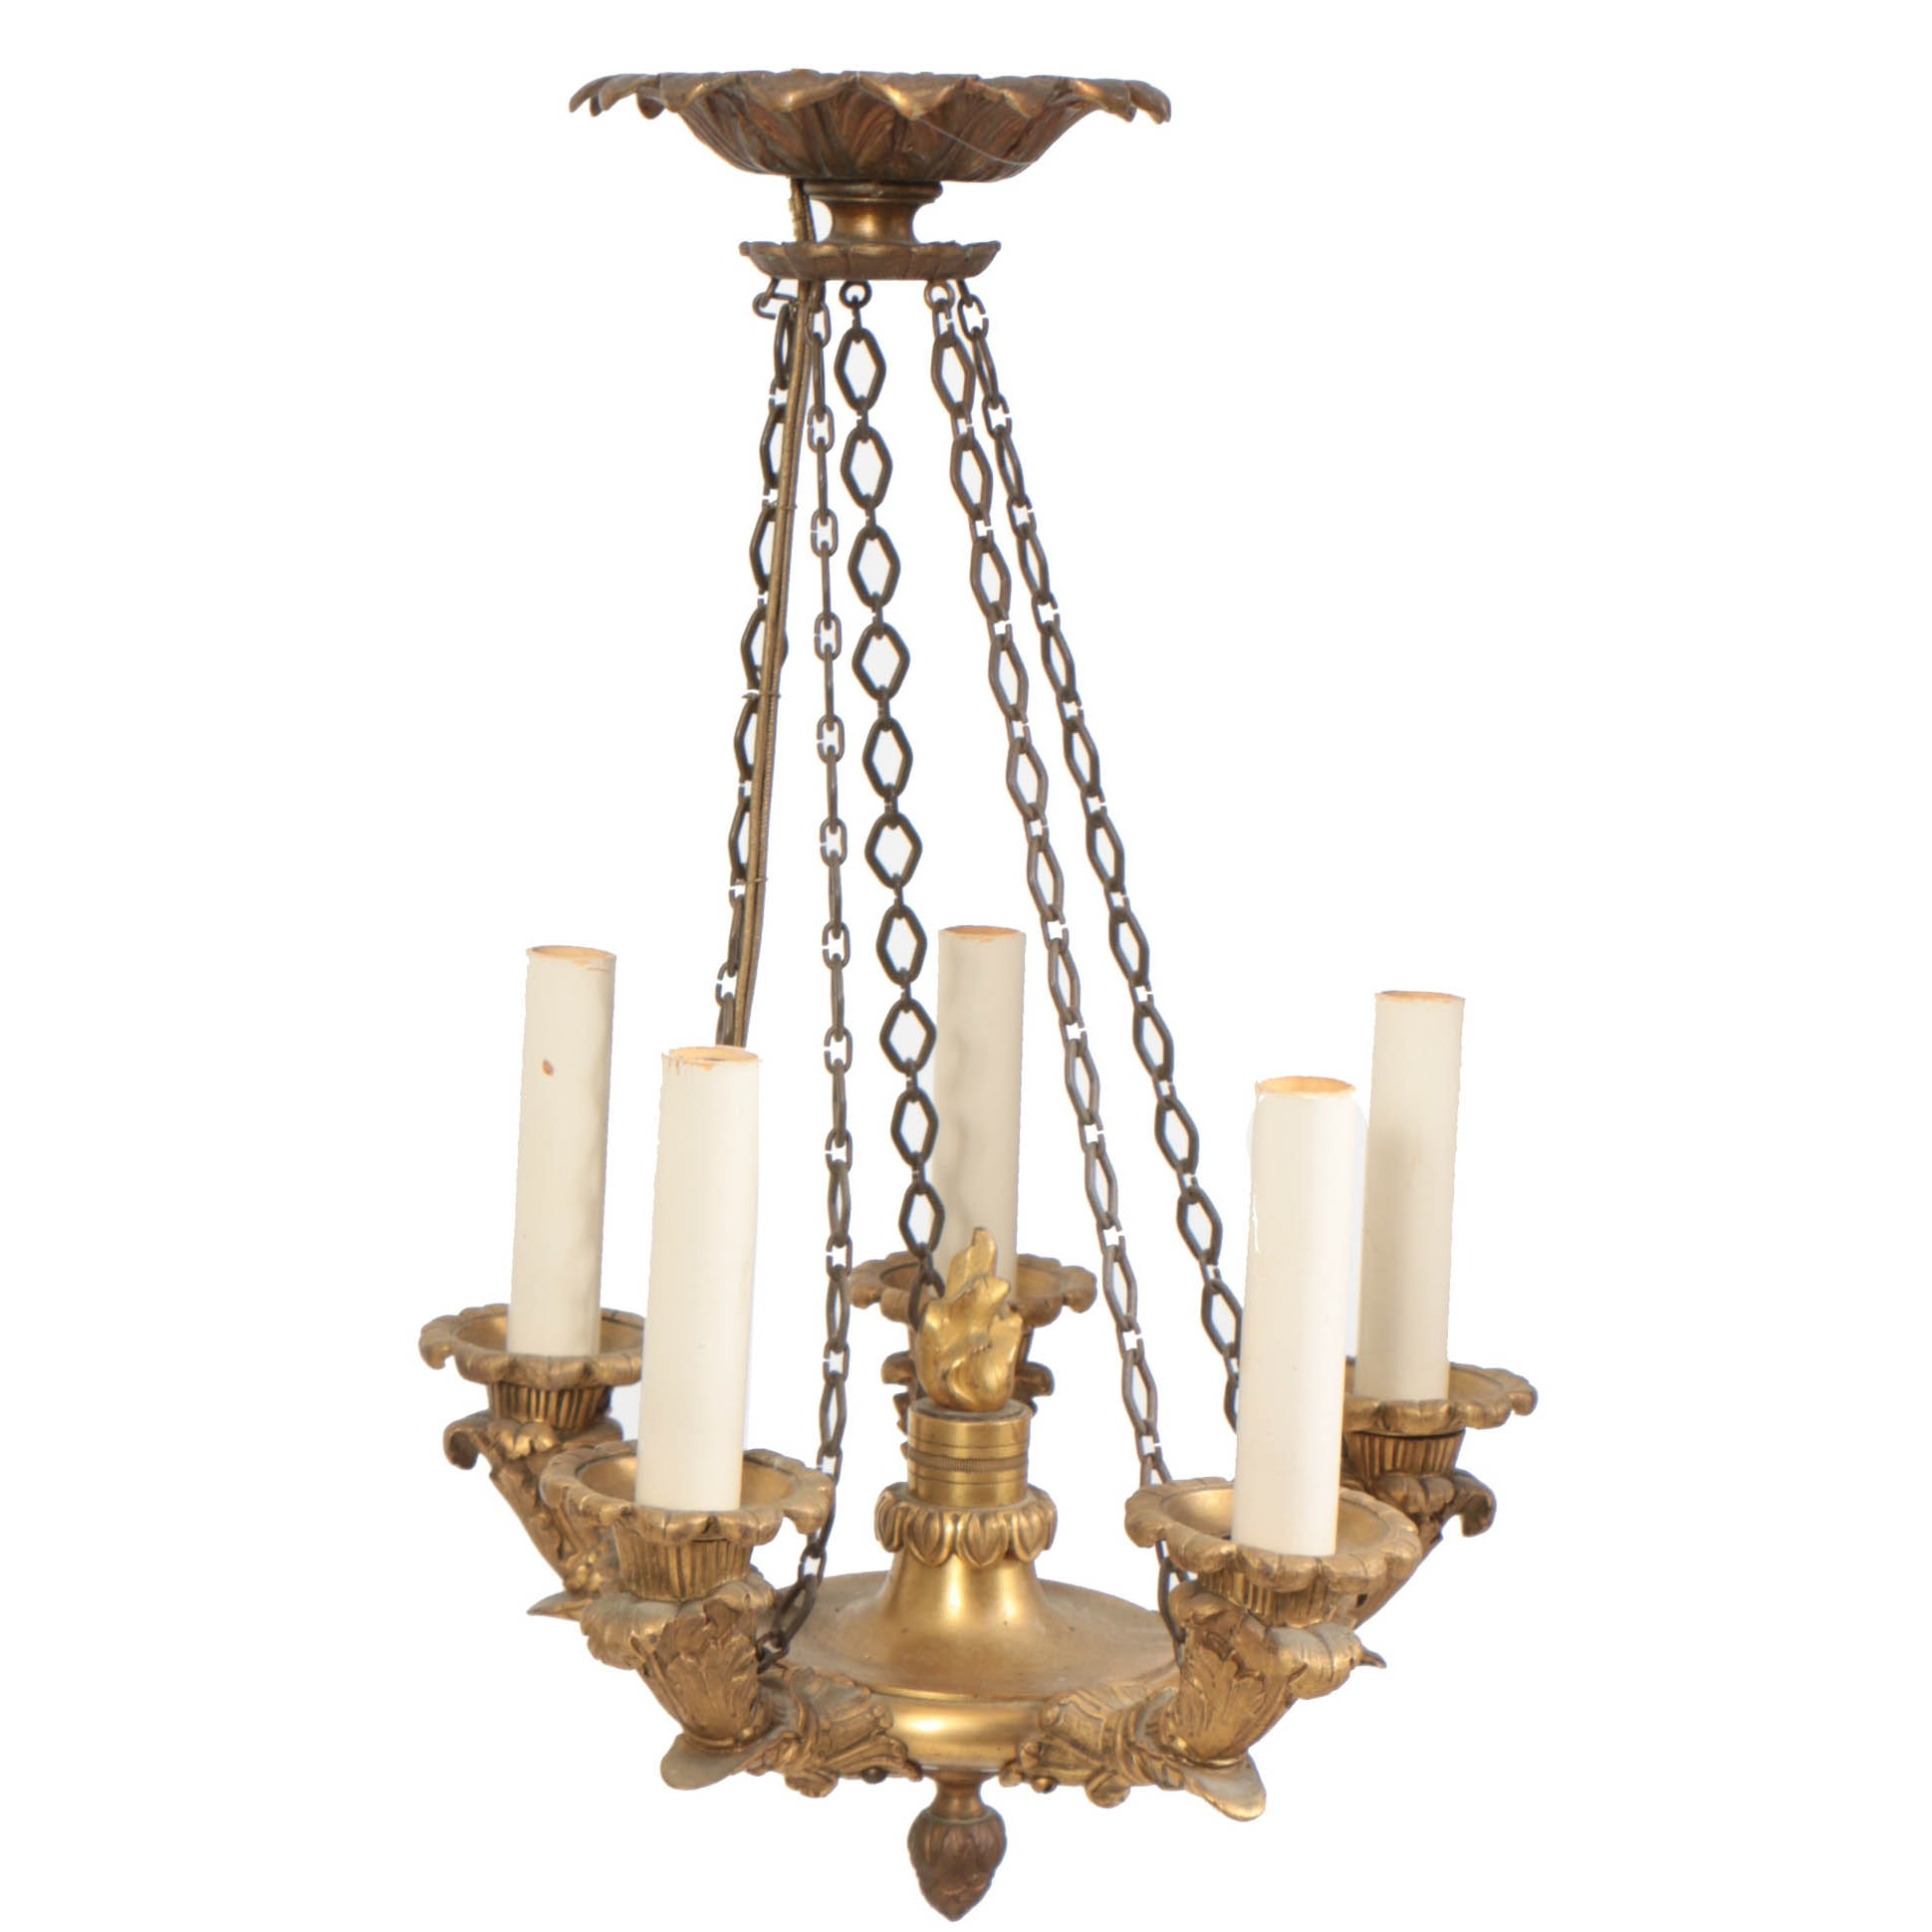 Early 19th Century Russian Neoclassic Bronze Doré Five Light Chandelier